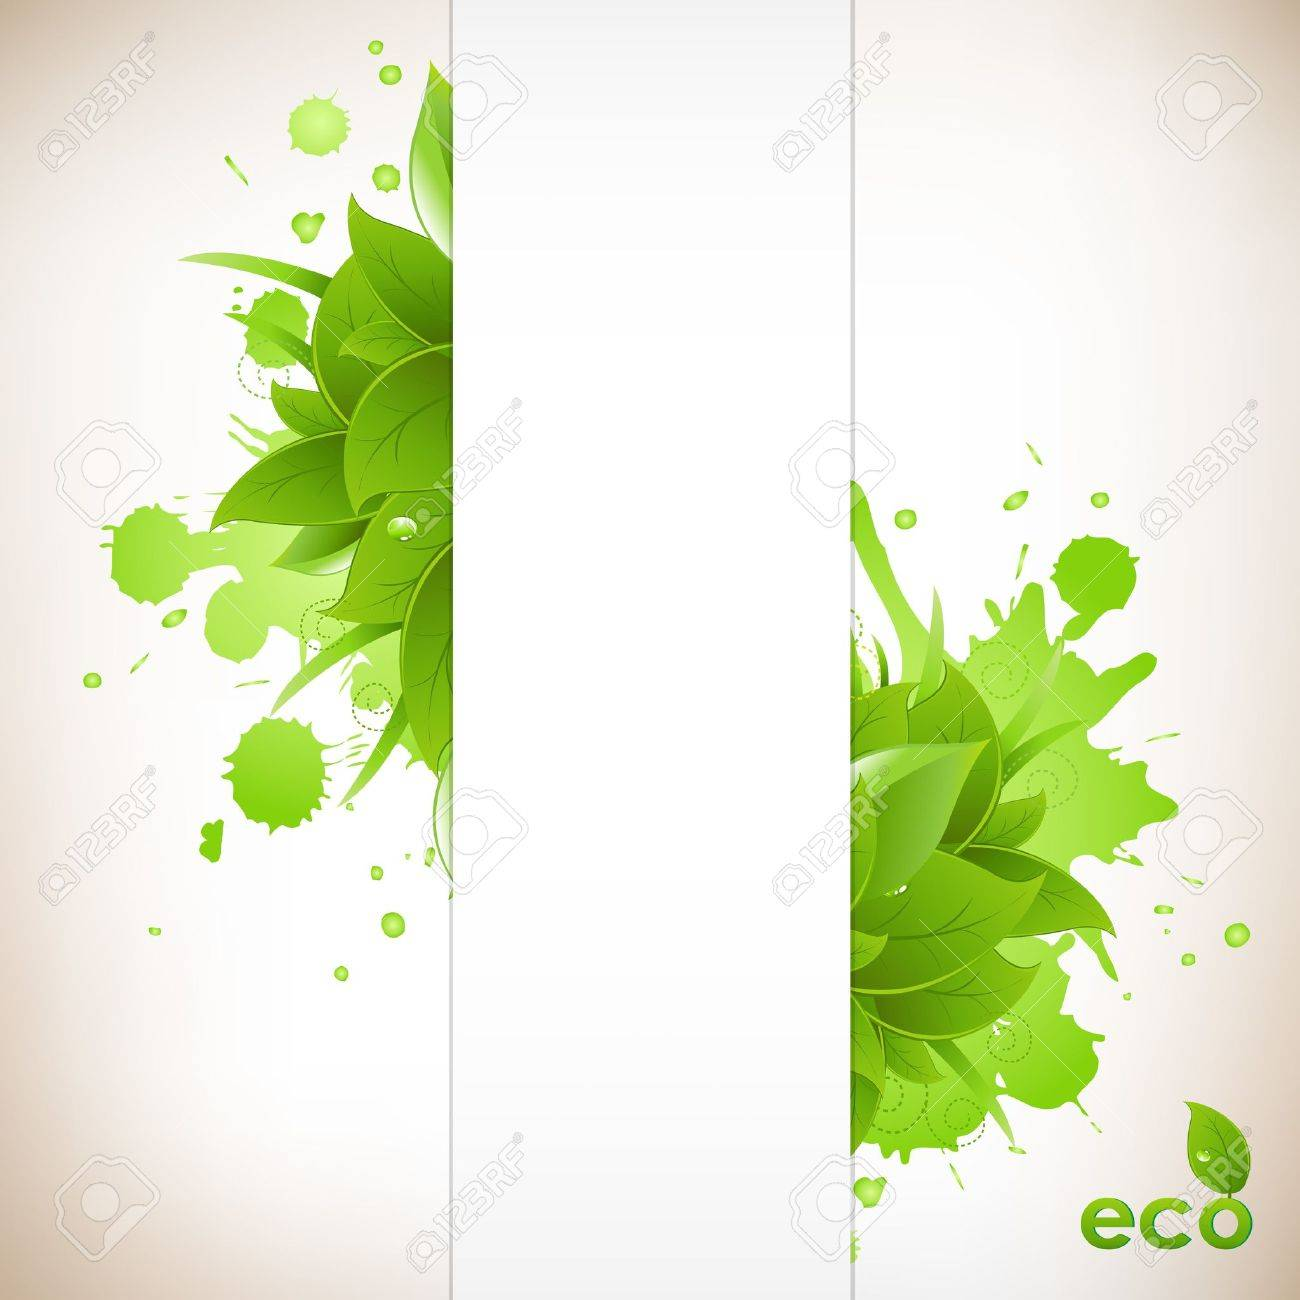 Design Eco Friendly Stock Vector - 9660892